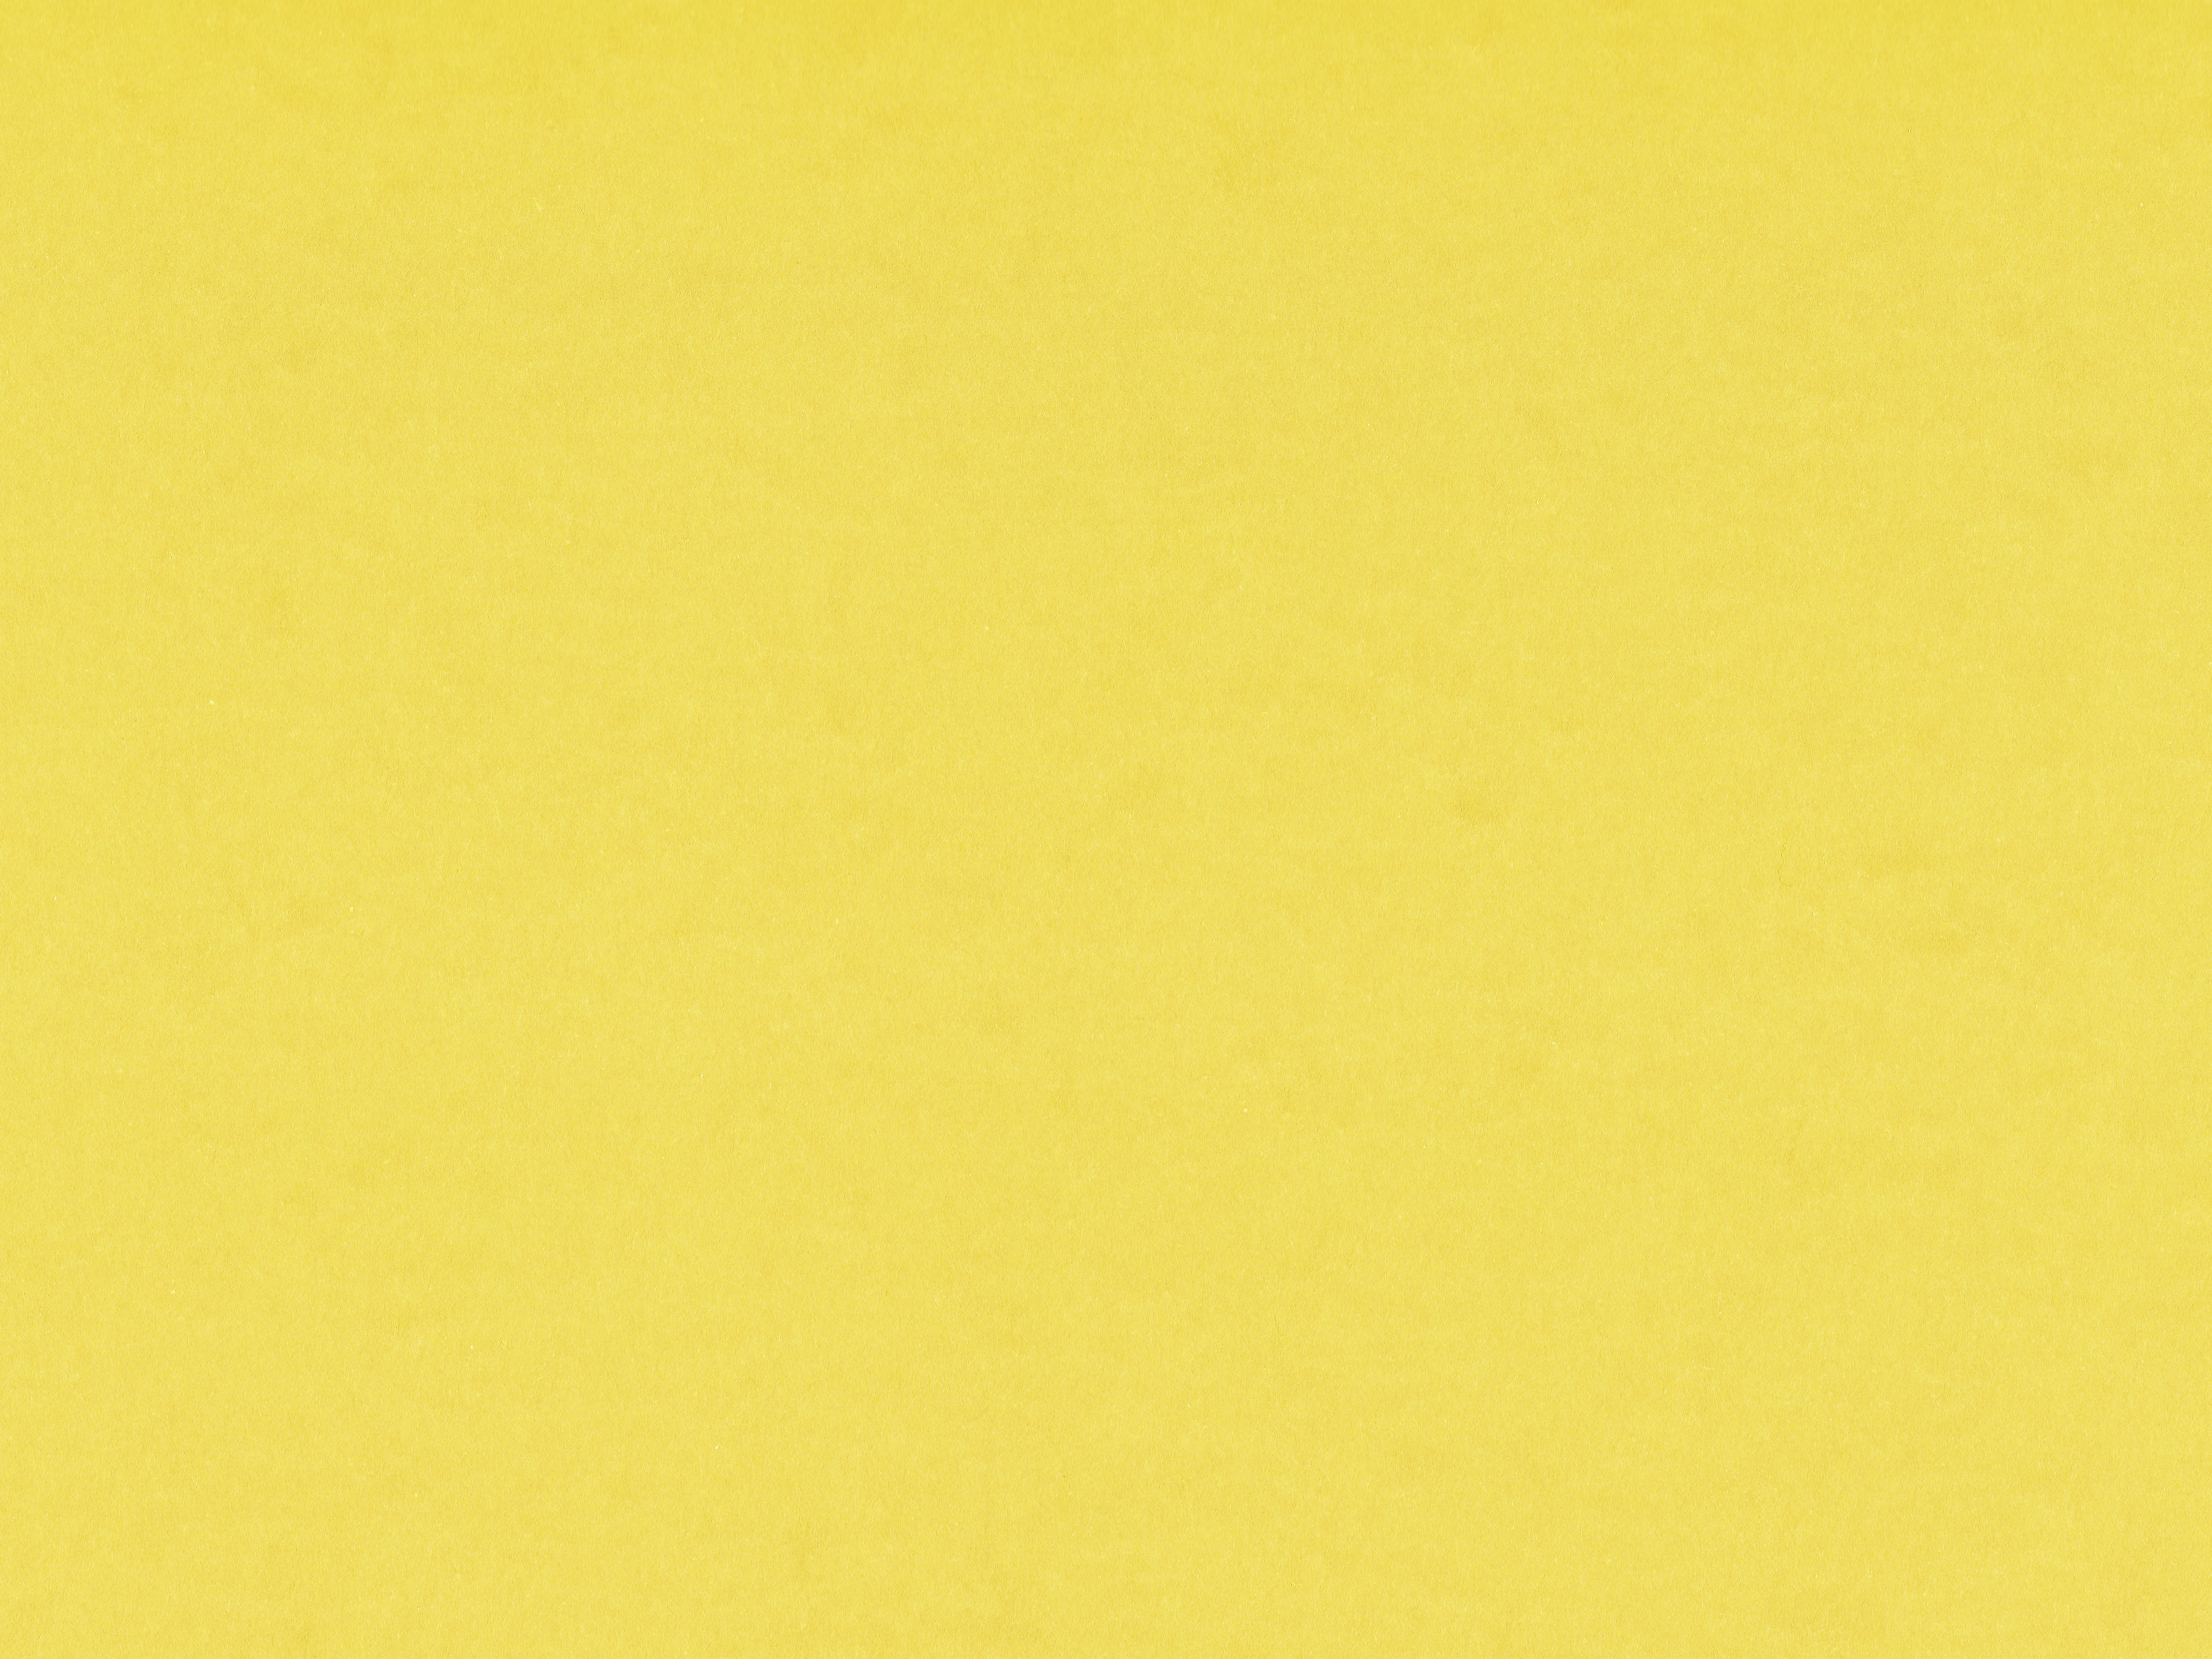 Yellow Card Stock Paper Texture Picture Free Photograph